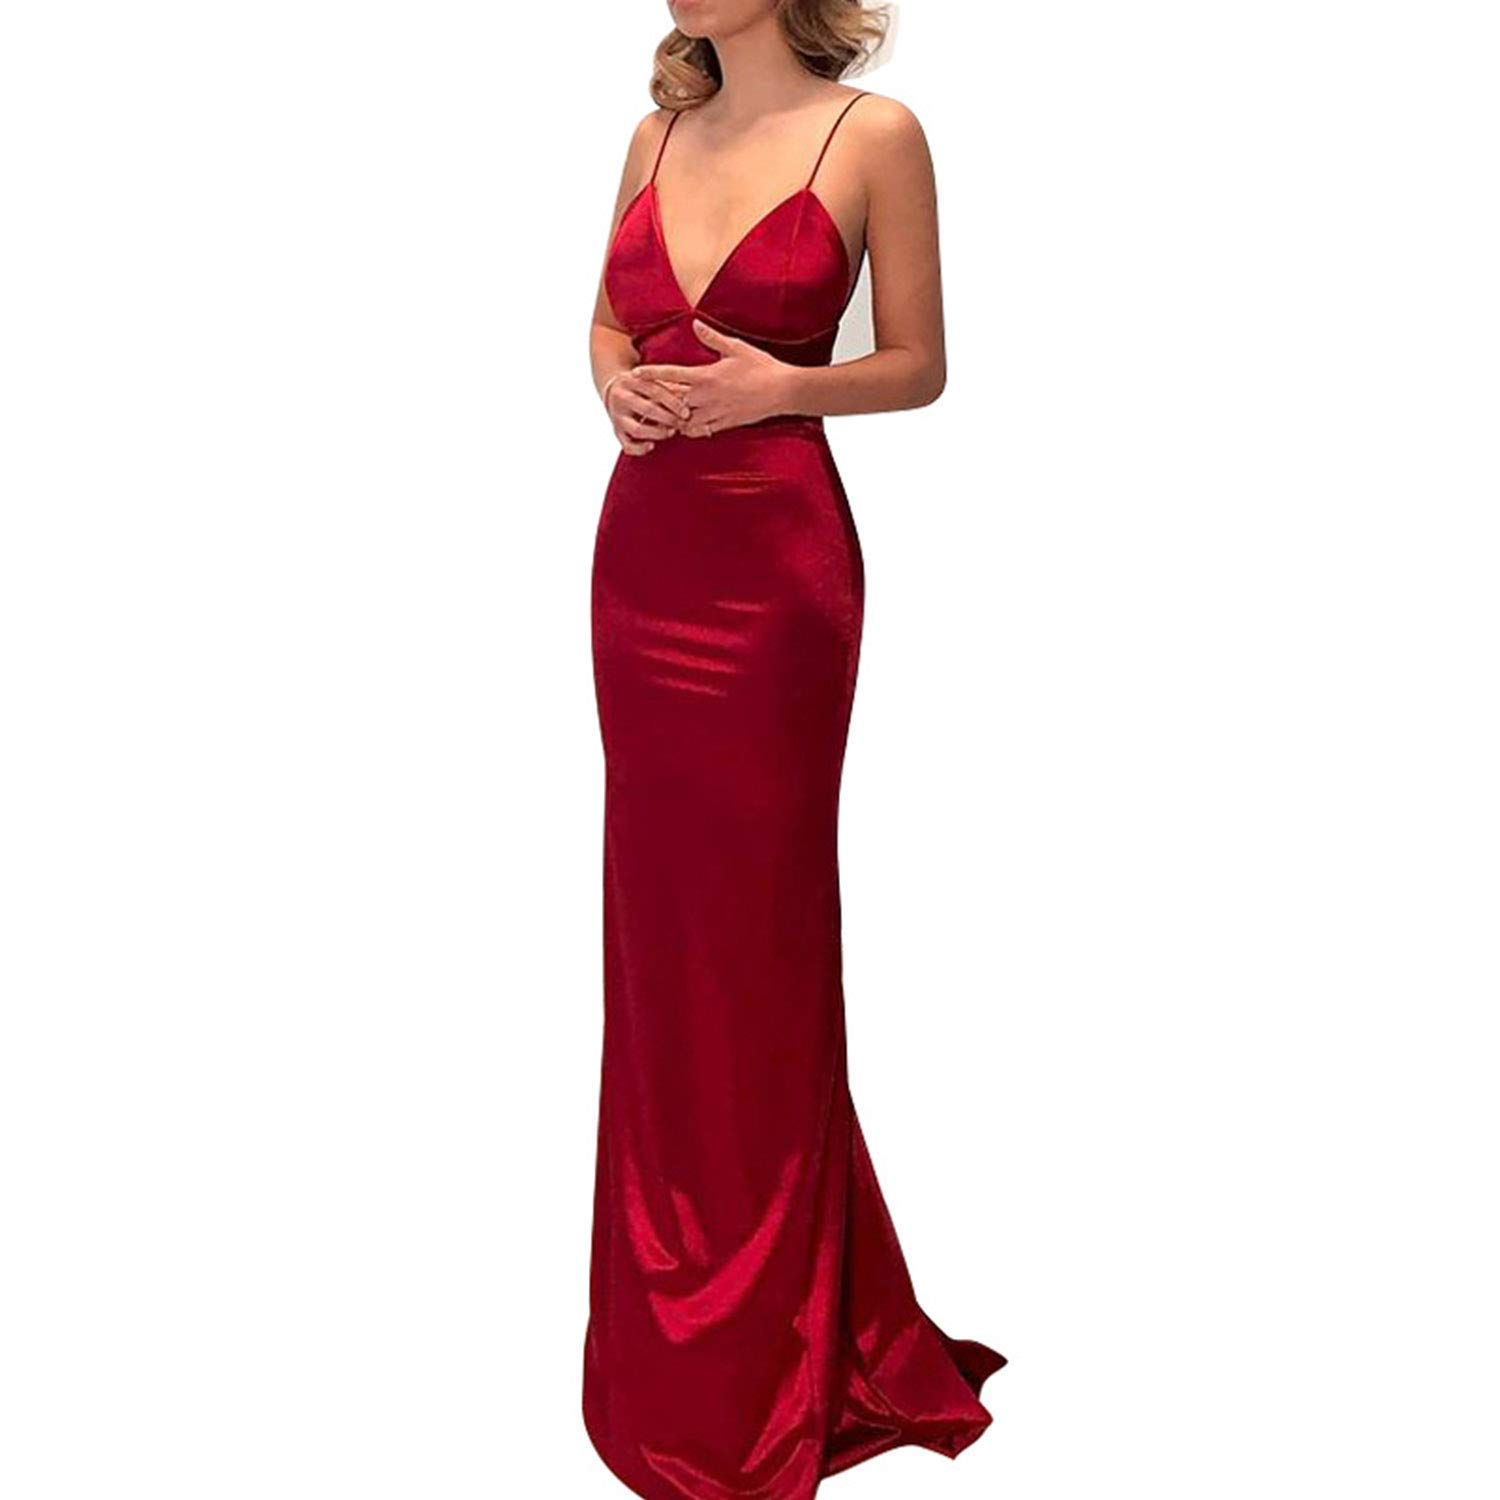 Women's Red Sexy Evening Dress Simple Spaghetti Straps VNeck Long Slim Ball Gowns Cocktail Party Prom Wedding Dresses